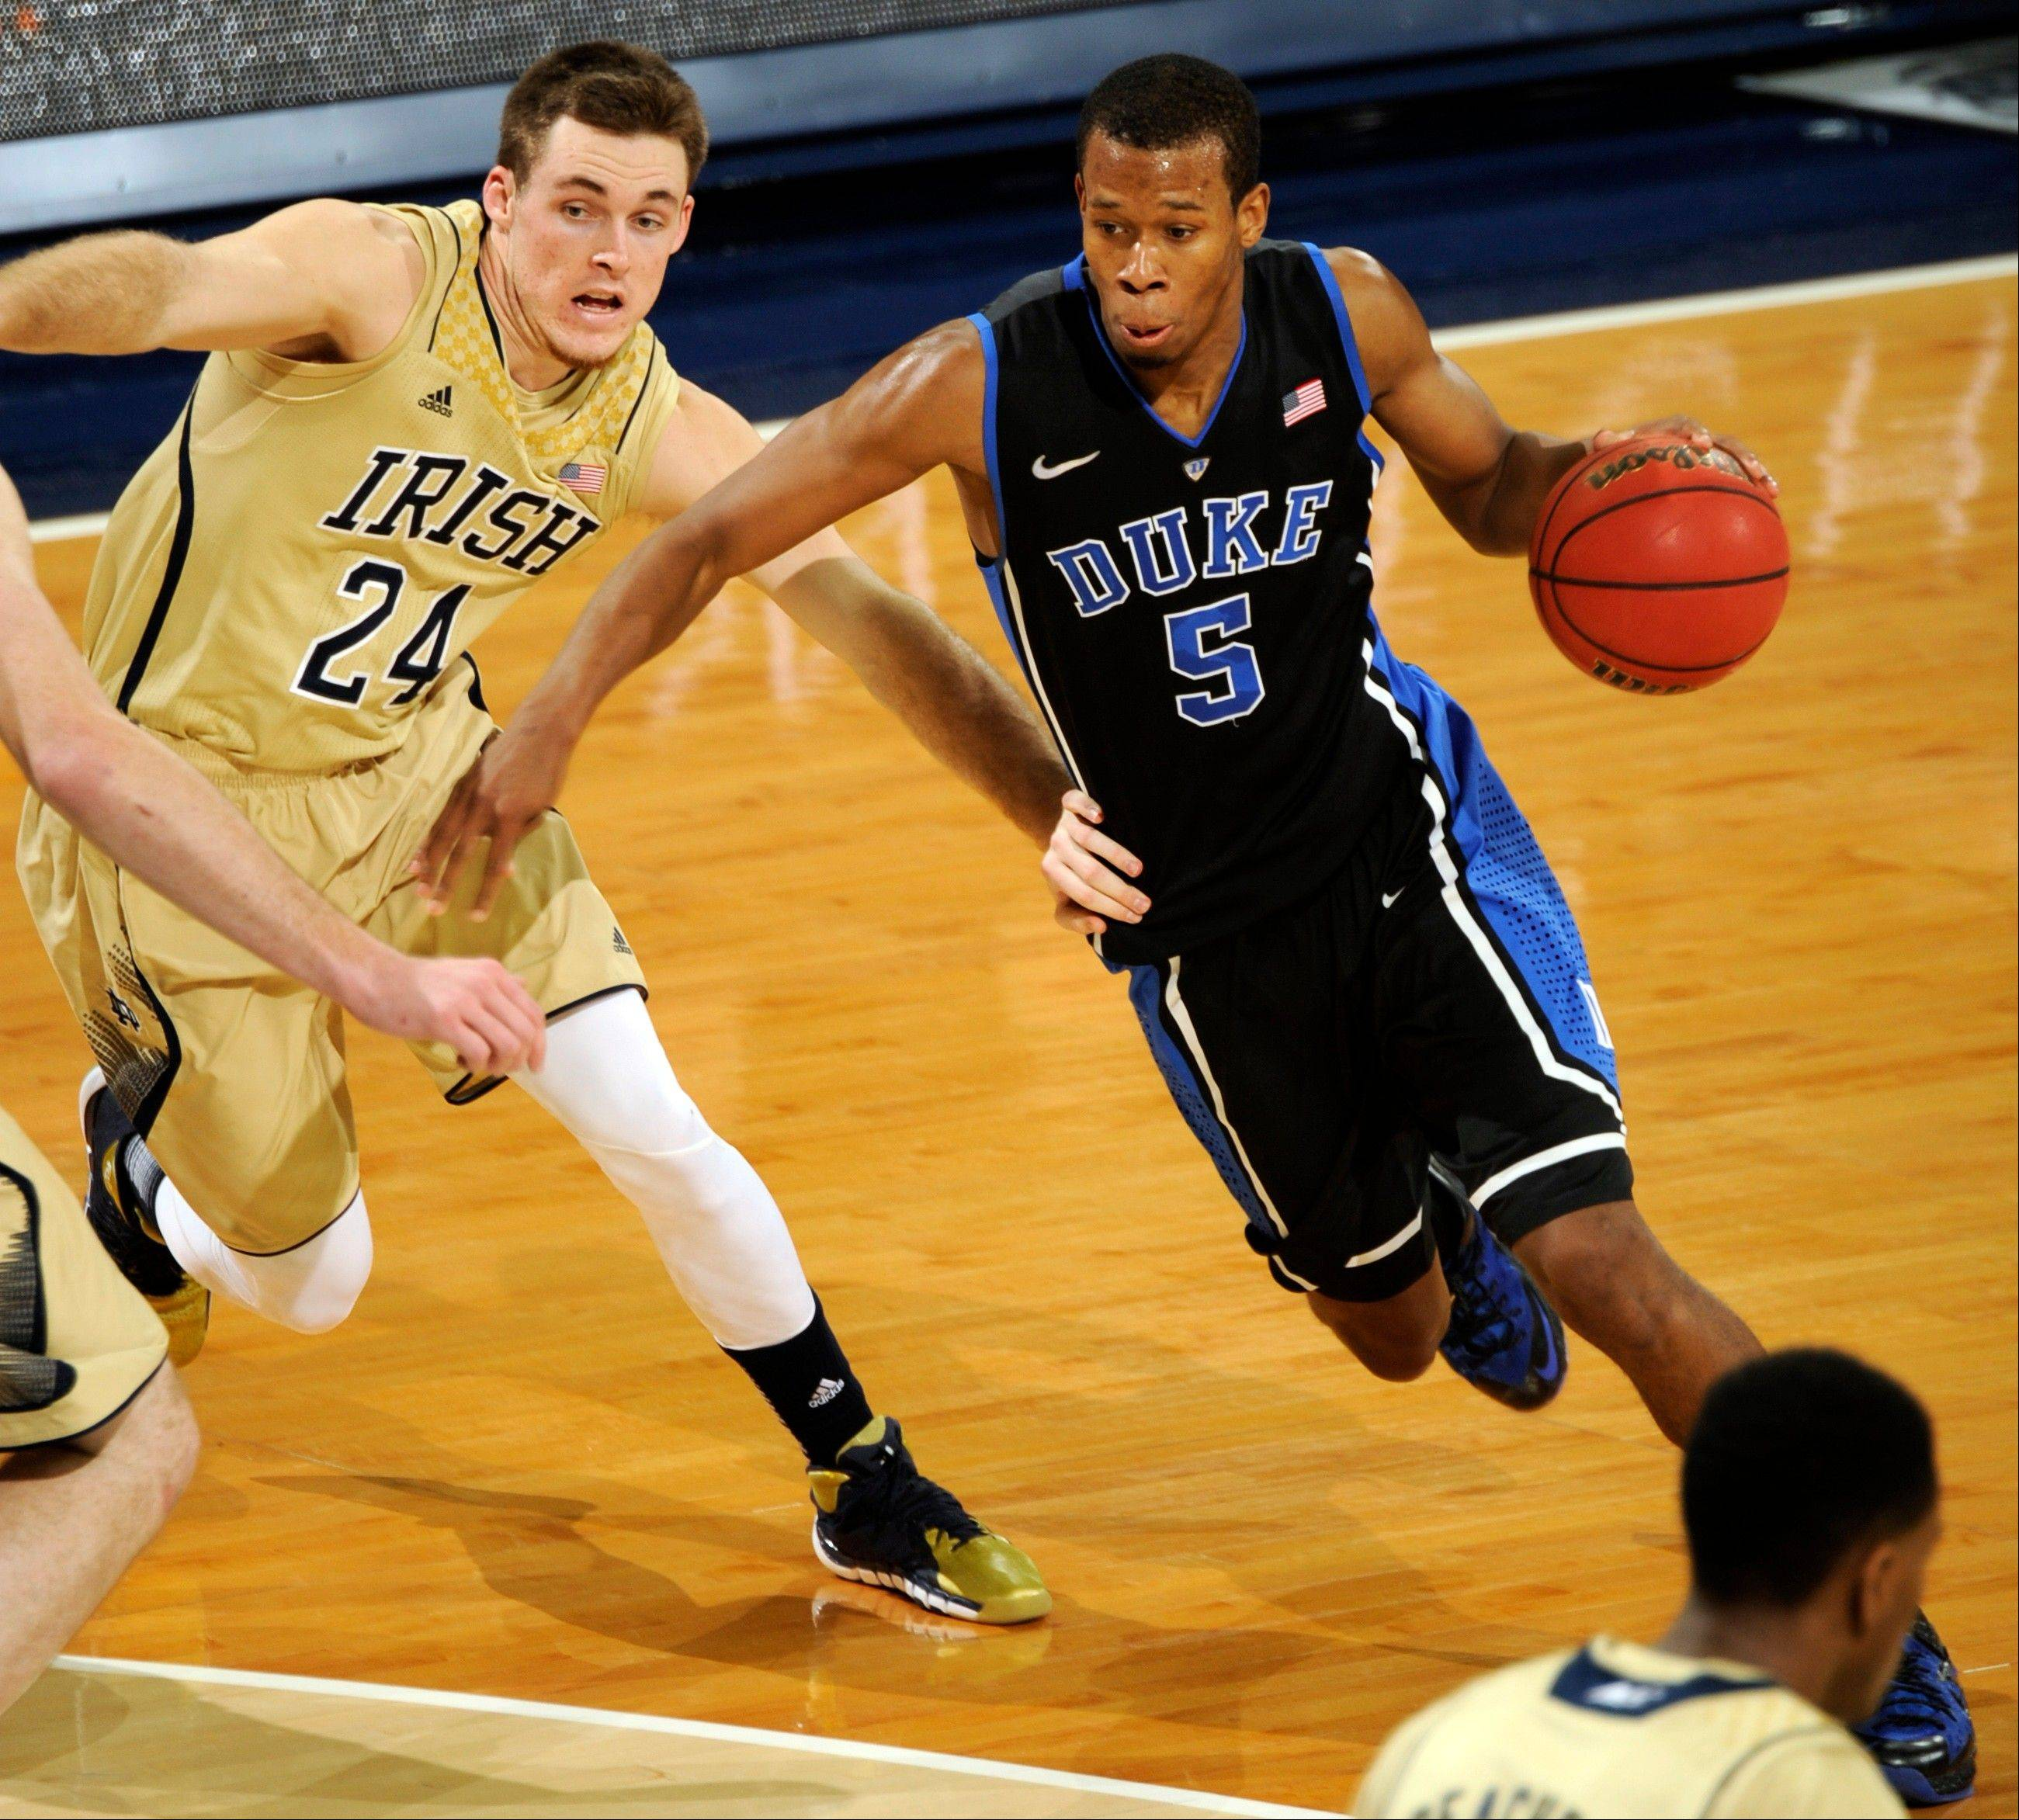 Duke guard Rodney Hood, right, drives the lane as Notre Dame guard Pat Connaughton defends the first half of an NCAA college basketball game, Saturday, Jan. 4, 2014, in South Bend, Ind. (AP Photo/Joe Raymond)